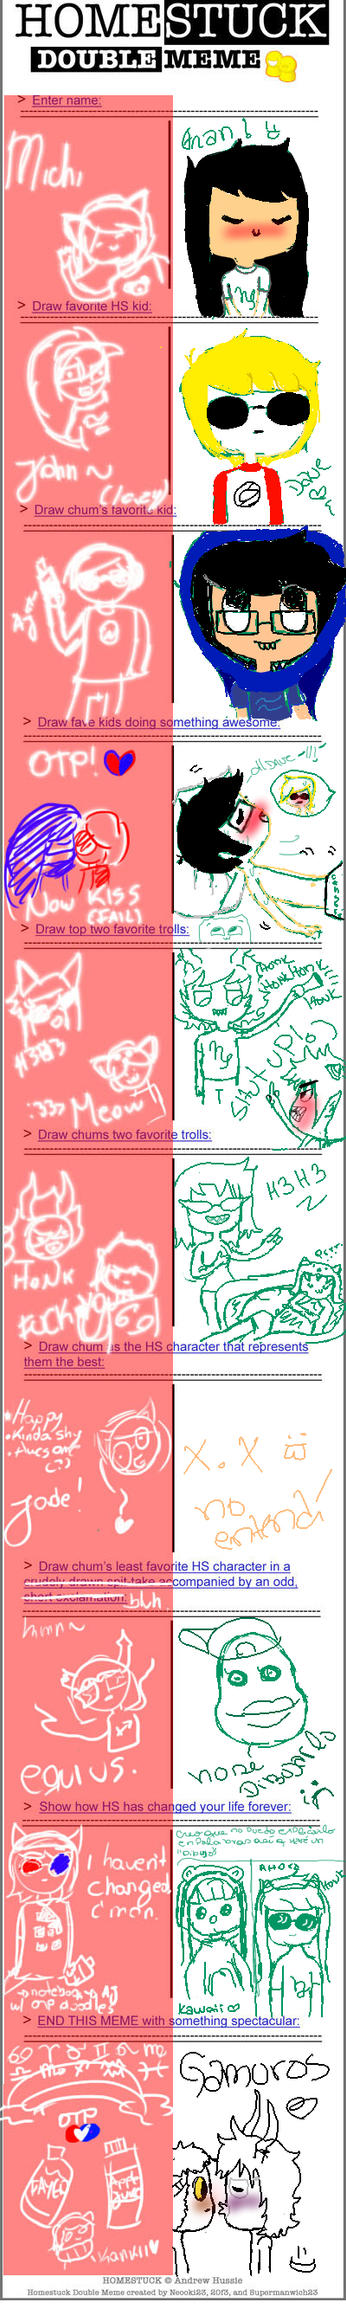 Homestuck double Meme by Rigby-FanGirl